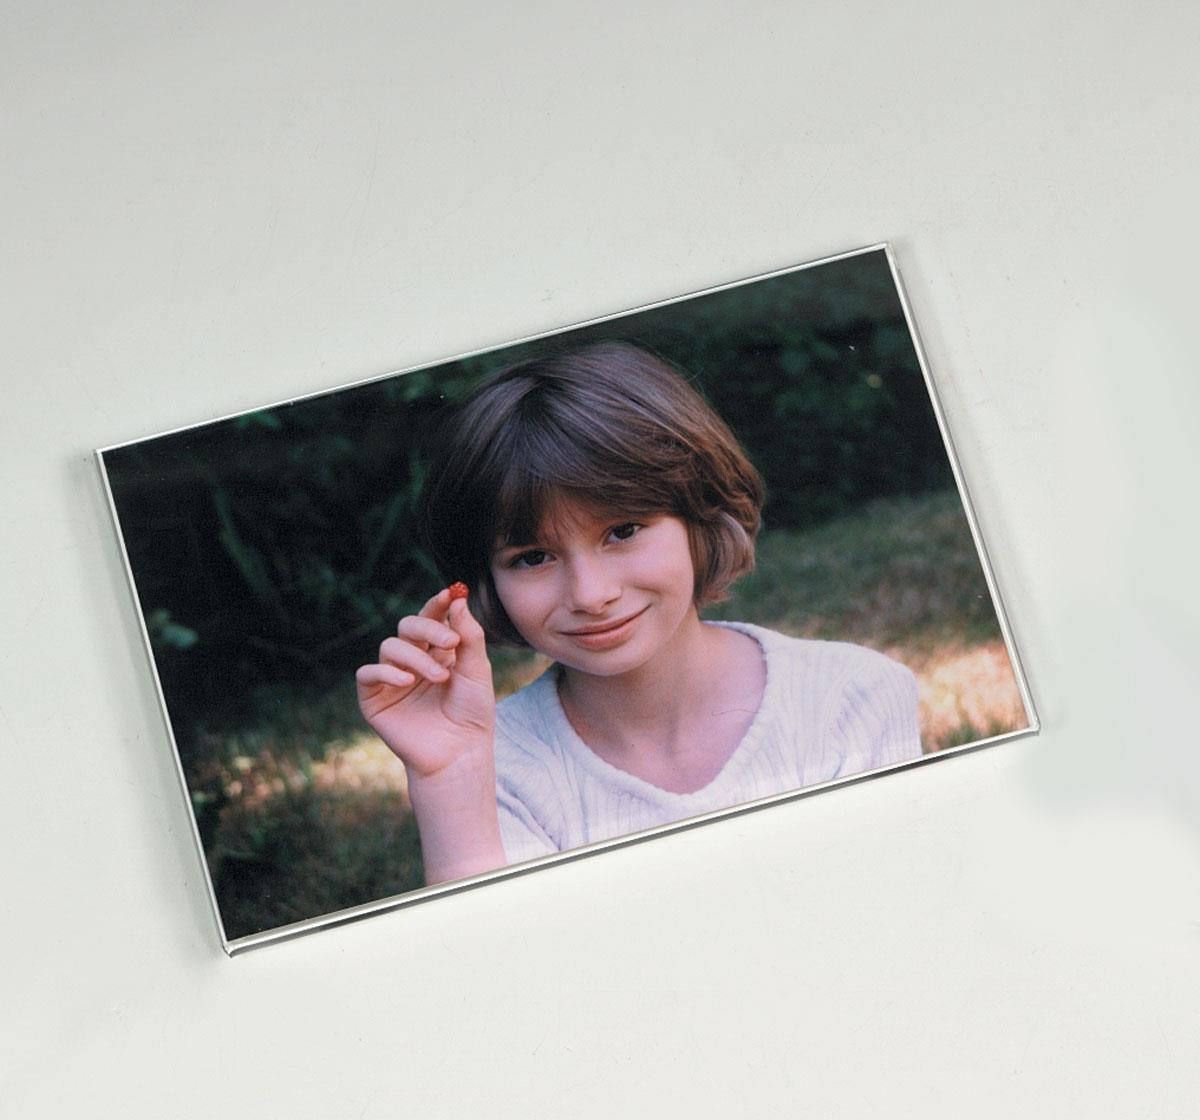 Displays2go Set of 20, Magnetic Photo Frames for 6 x 4 Inch Pictures, Includes 2 Magnets and 2 Sticky Pads for Attachment to Any Surface - Clear Acrylic, No Frame or Border by Displays2go (Image #1)